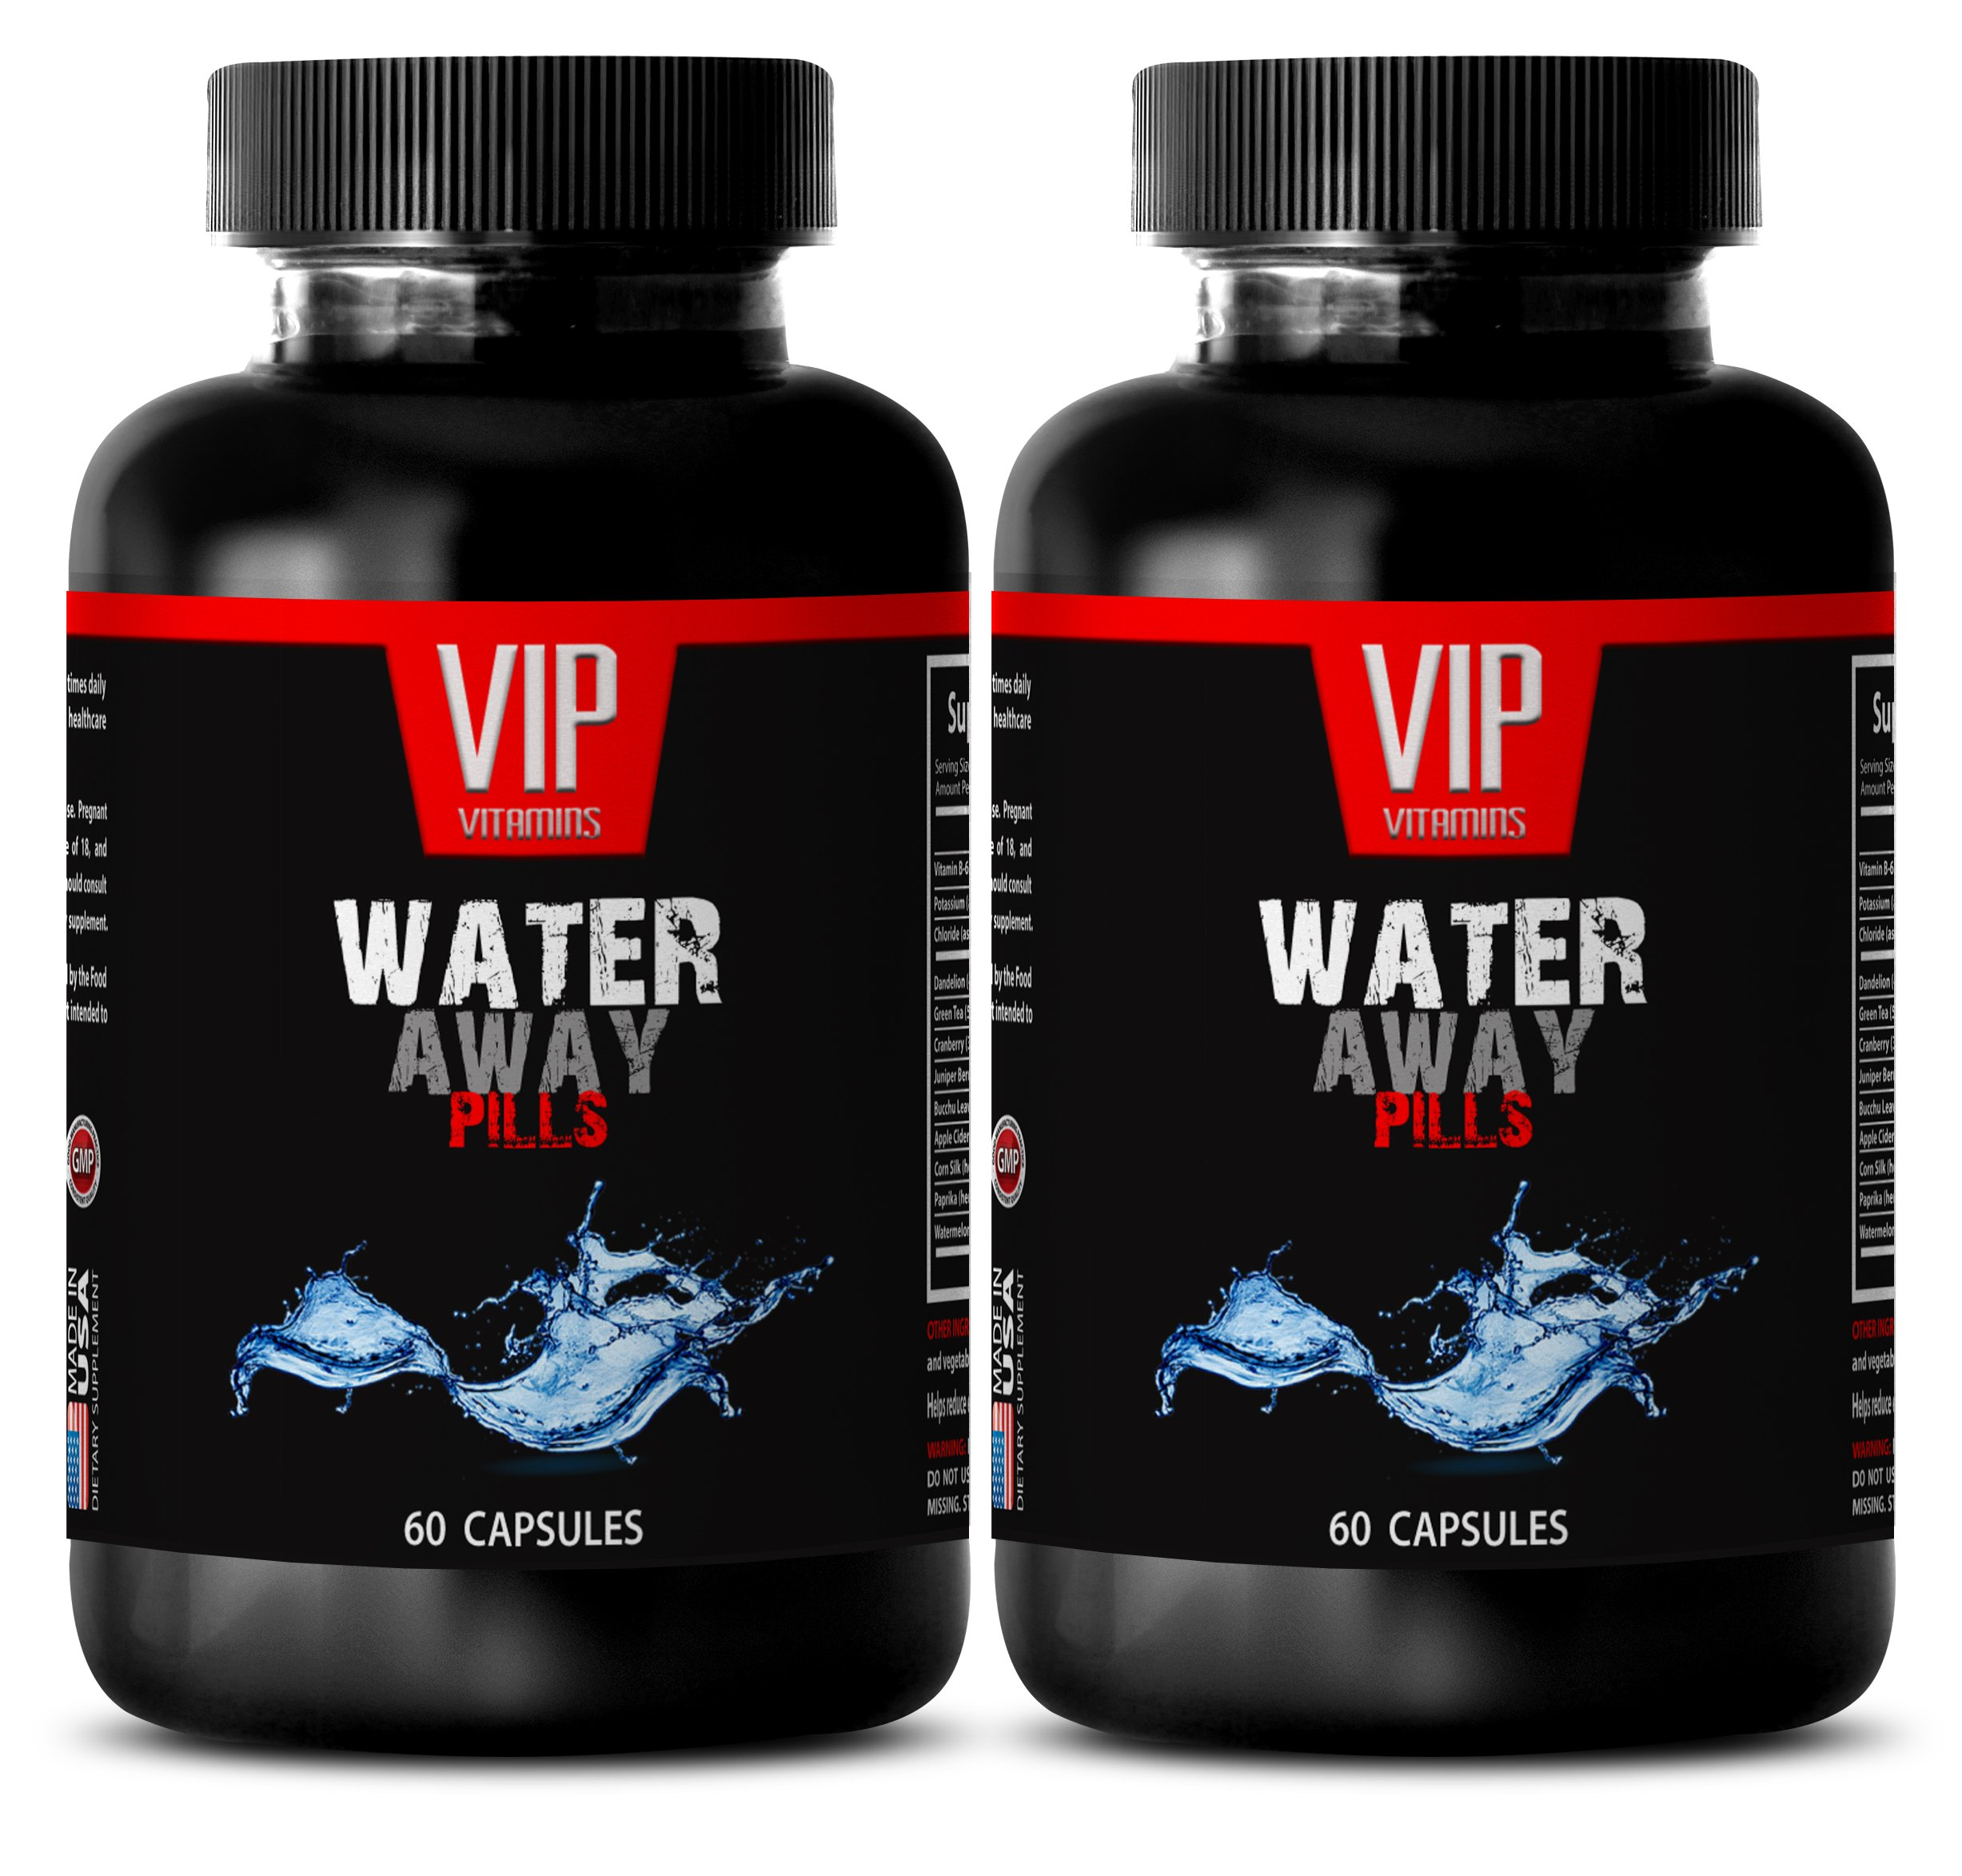 Bloating relief and belly reduction - WATER AWAY DIURETIC PILLS - Natural detox pills - 2 Bottles 120 Capsules